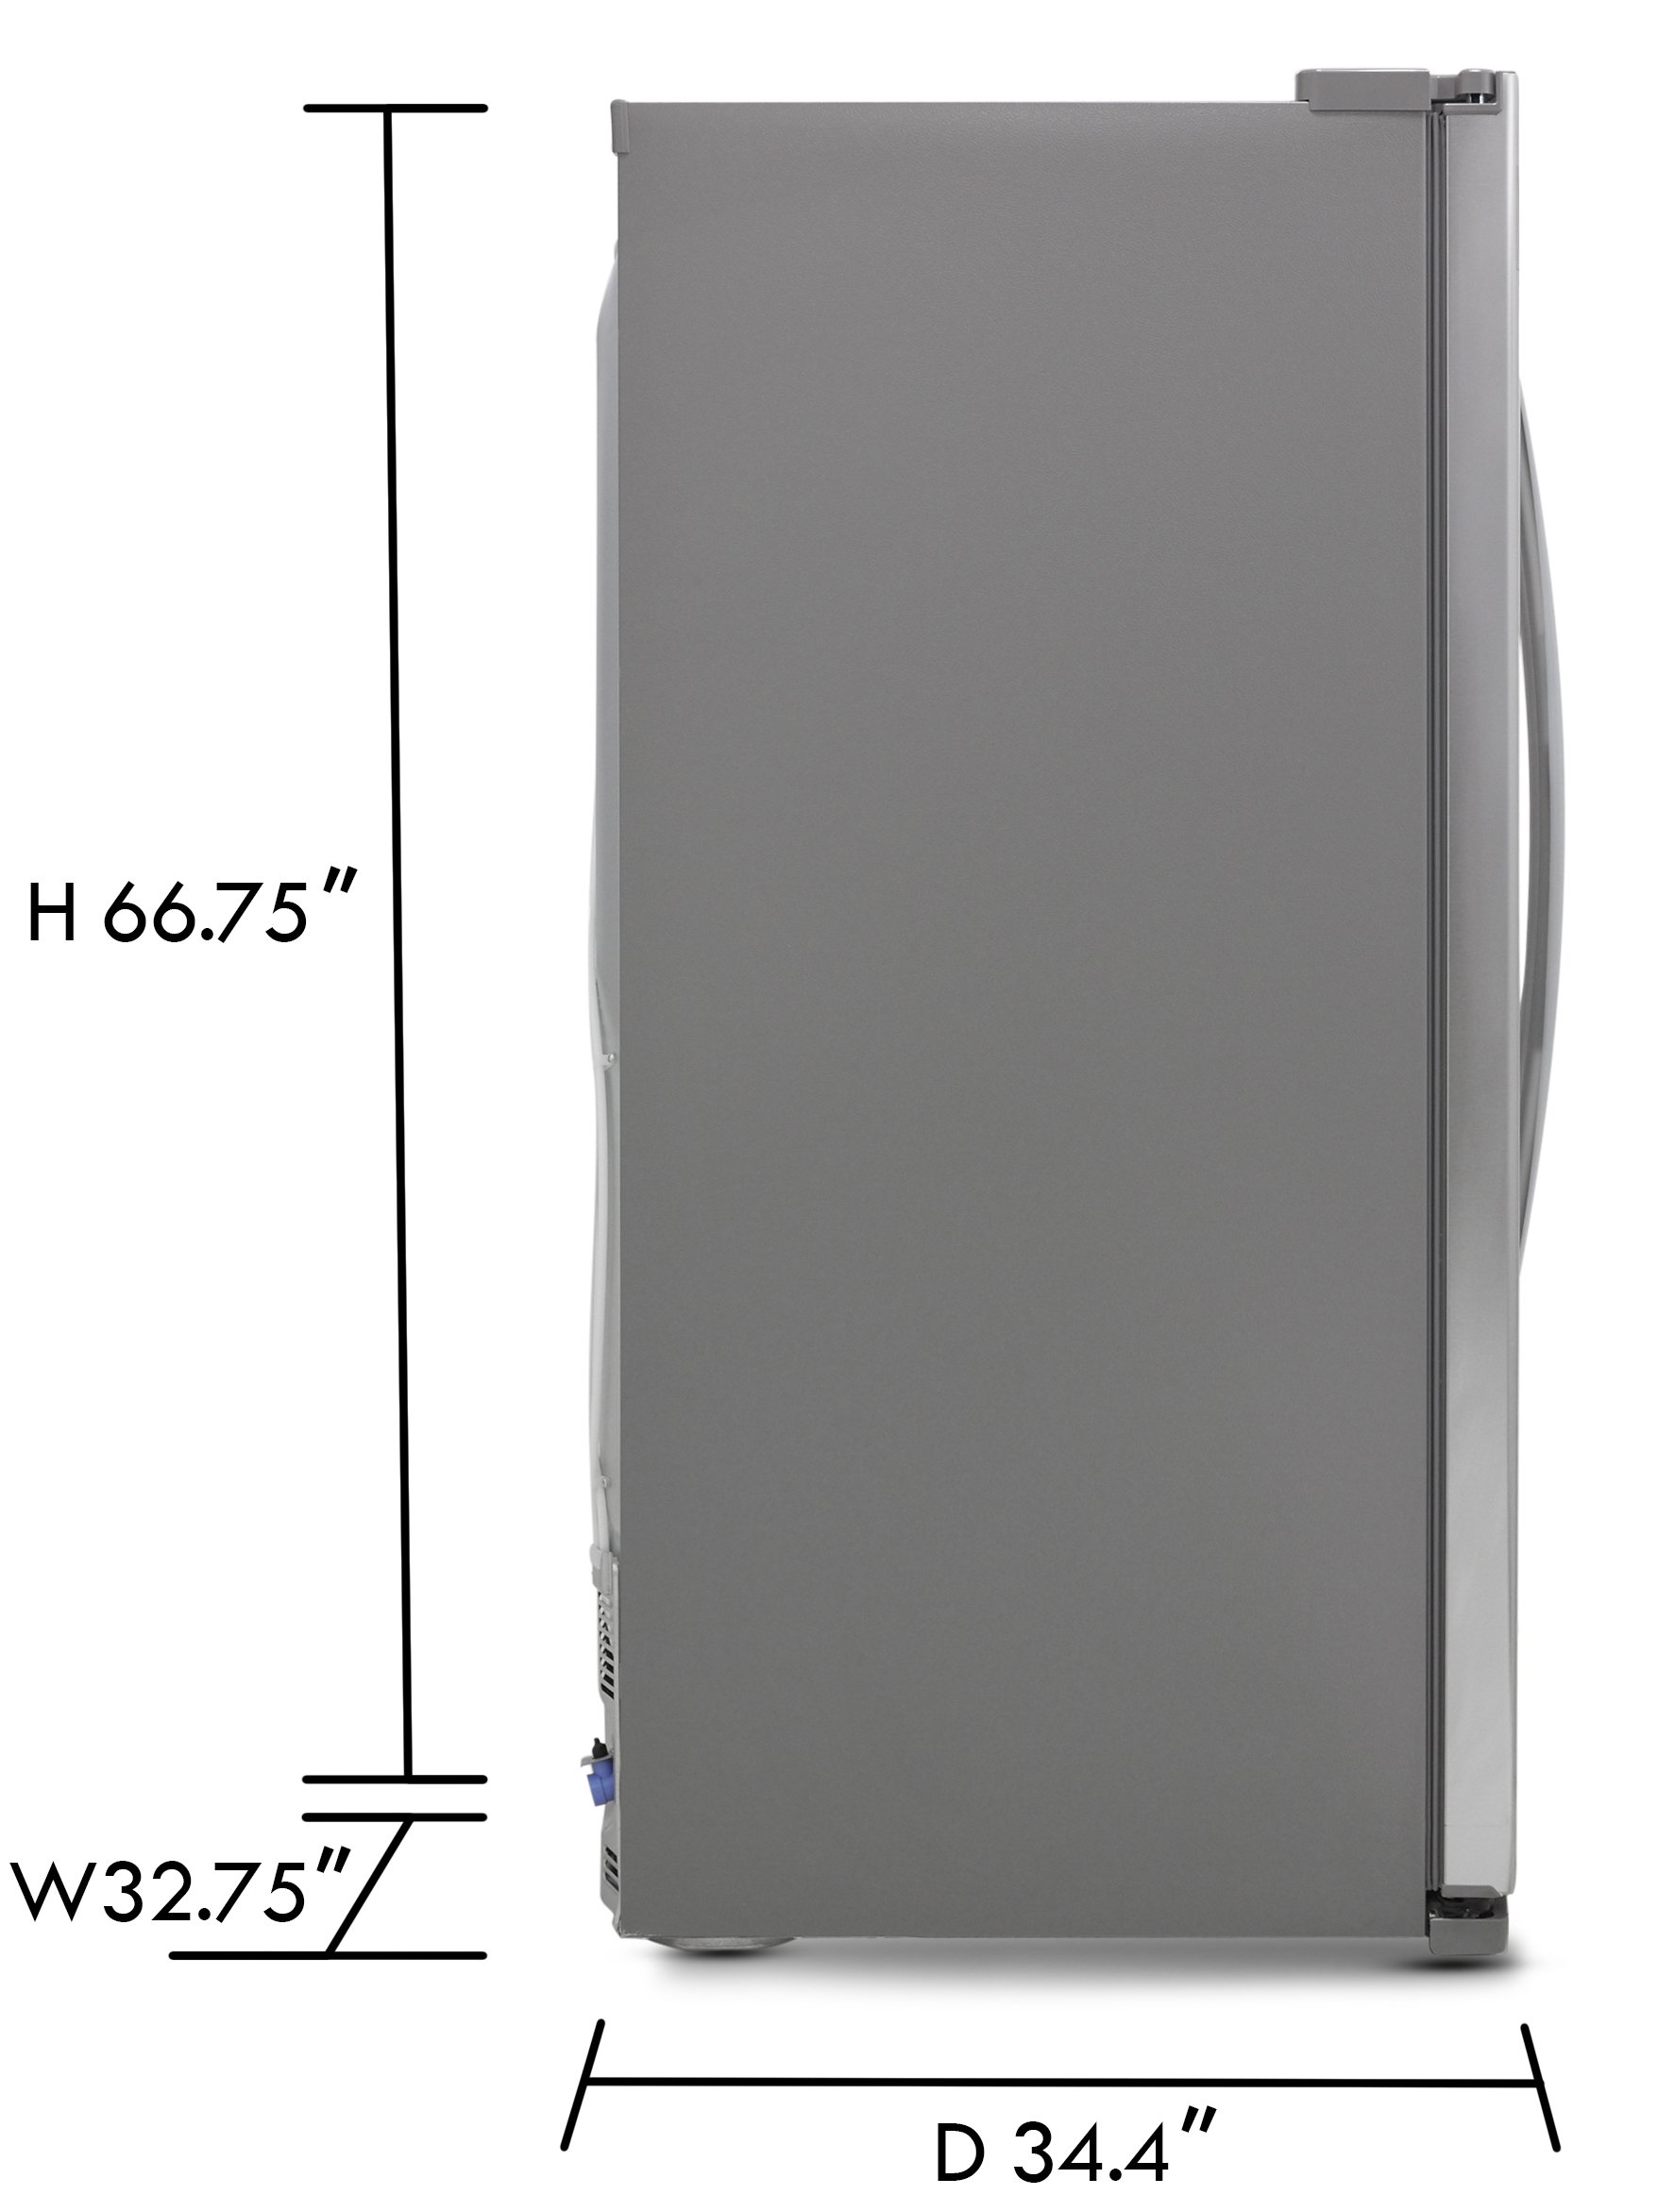 Kenmore Elite 51823 21.9 cu. ft. Side-by-Side Refrigerator in Stainless Steel, includes delivery and hookup (Available in select cities only) by Kenmore (Image #3)